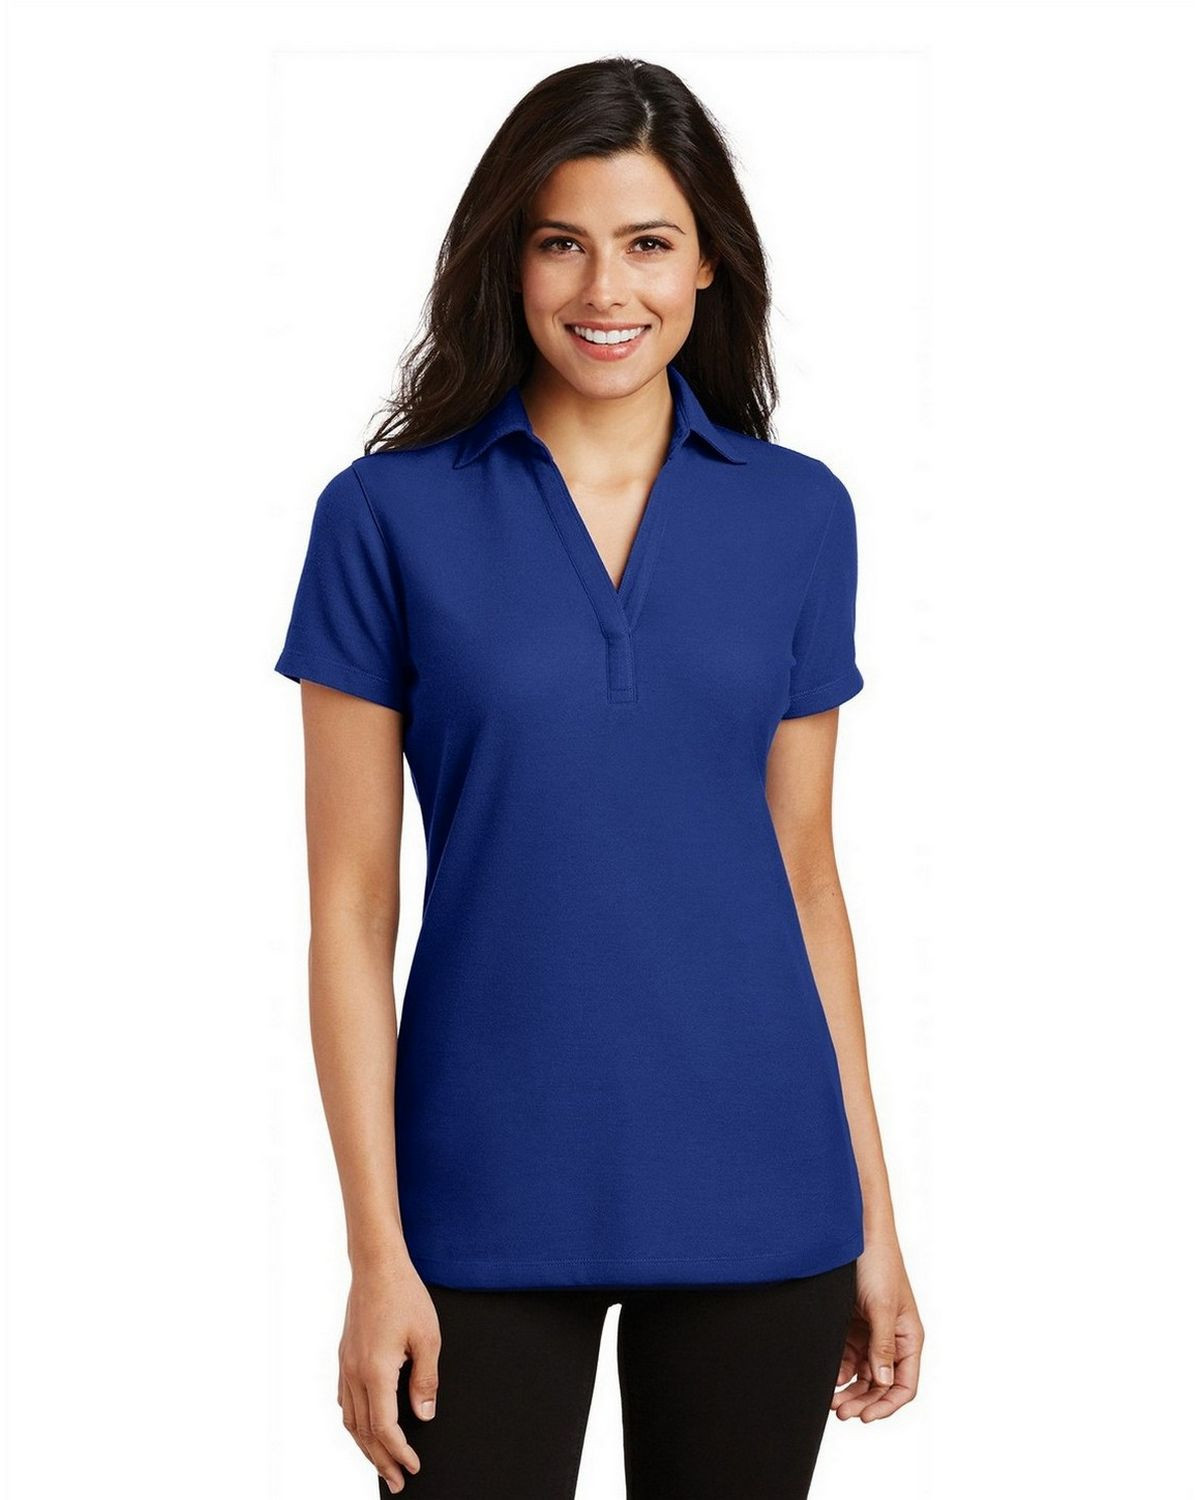 Port Authority L5001 Women's Silk Touch Y-Neck Polo - Royal - XS #silk